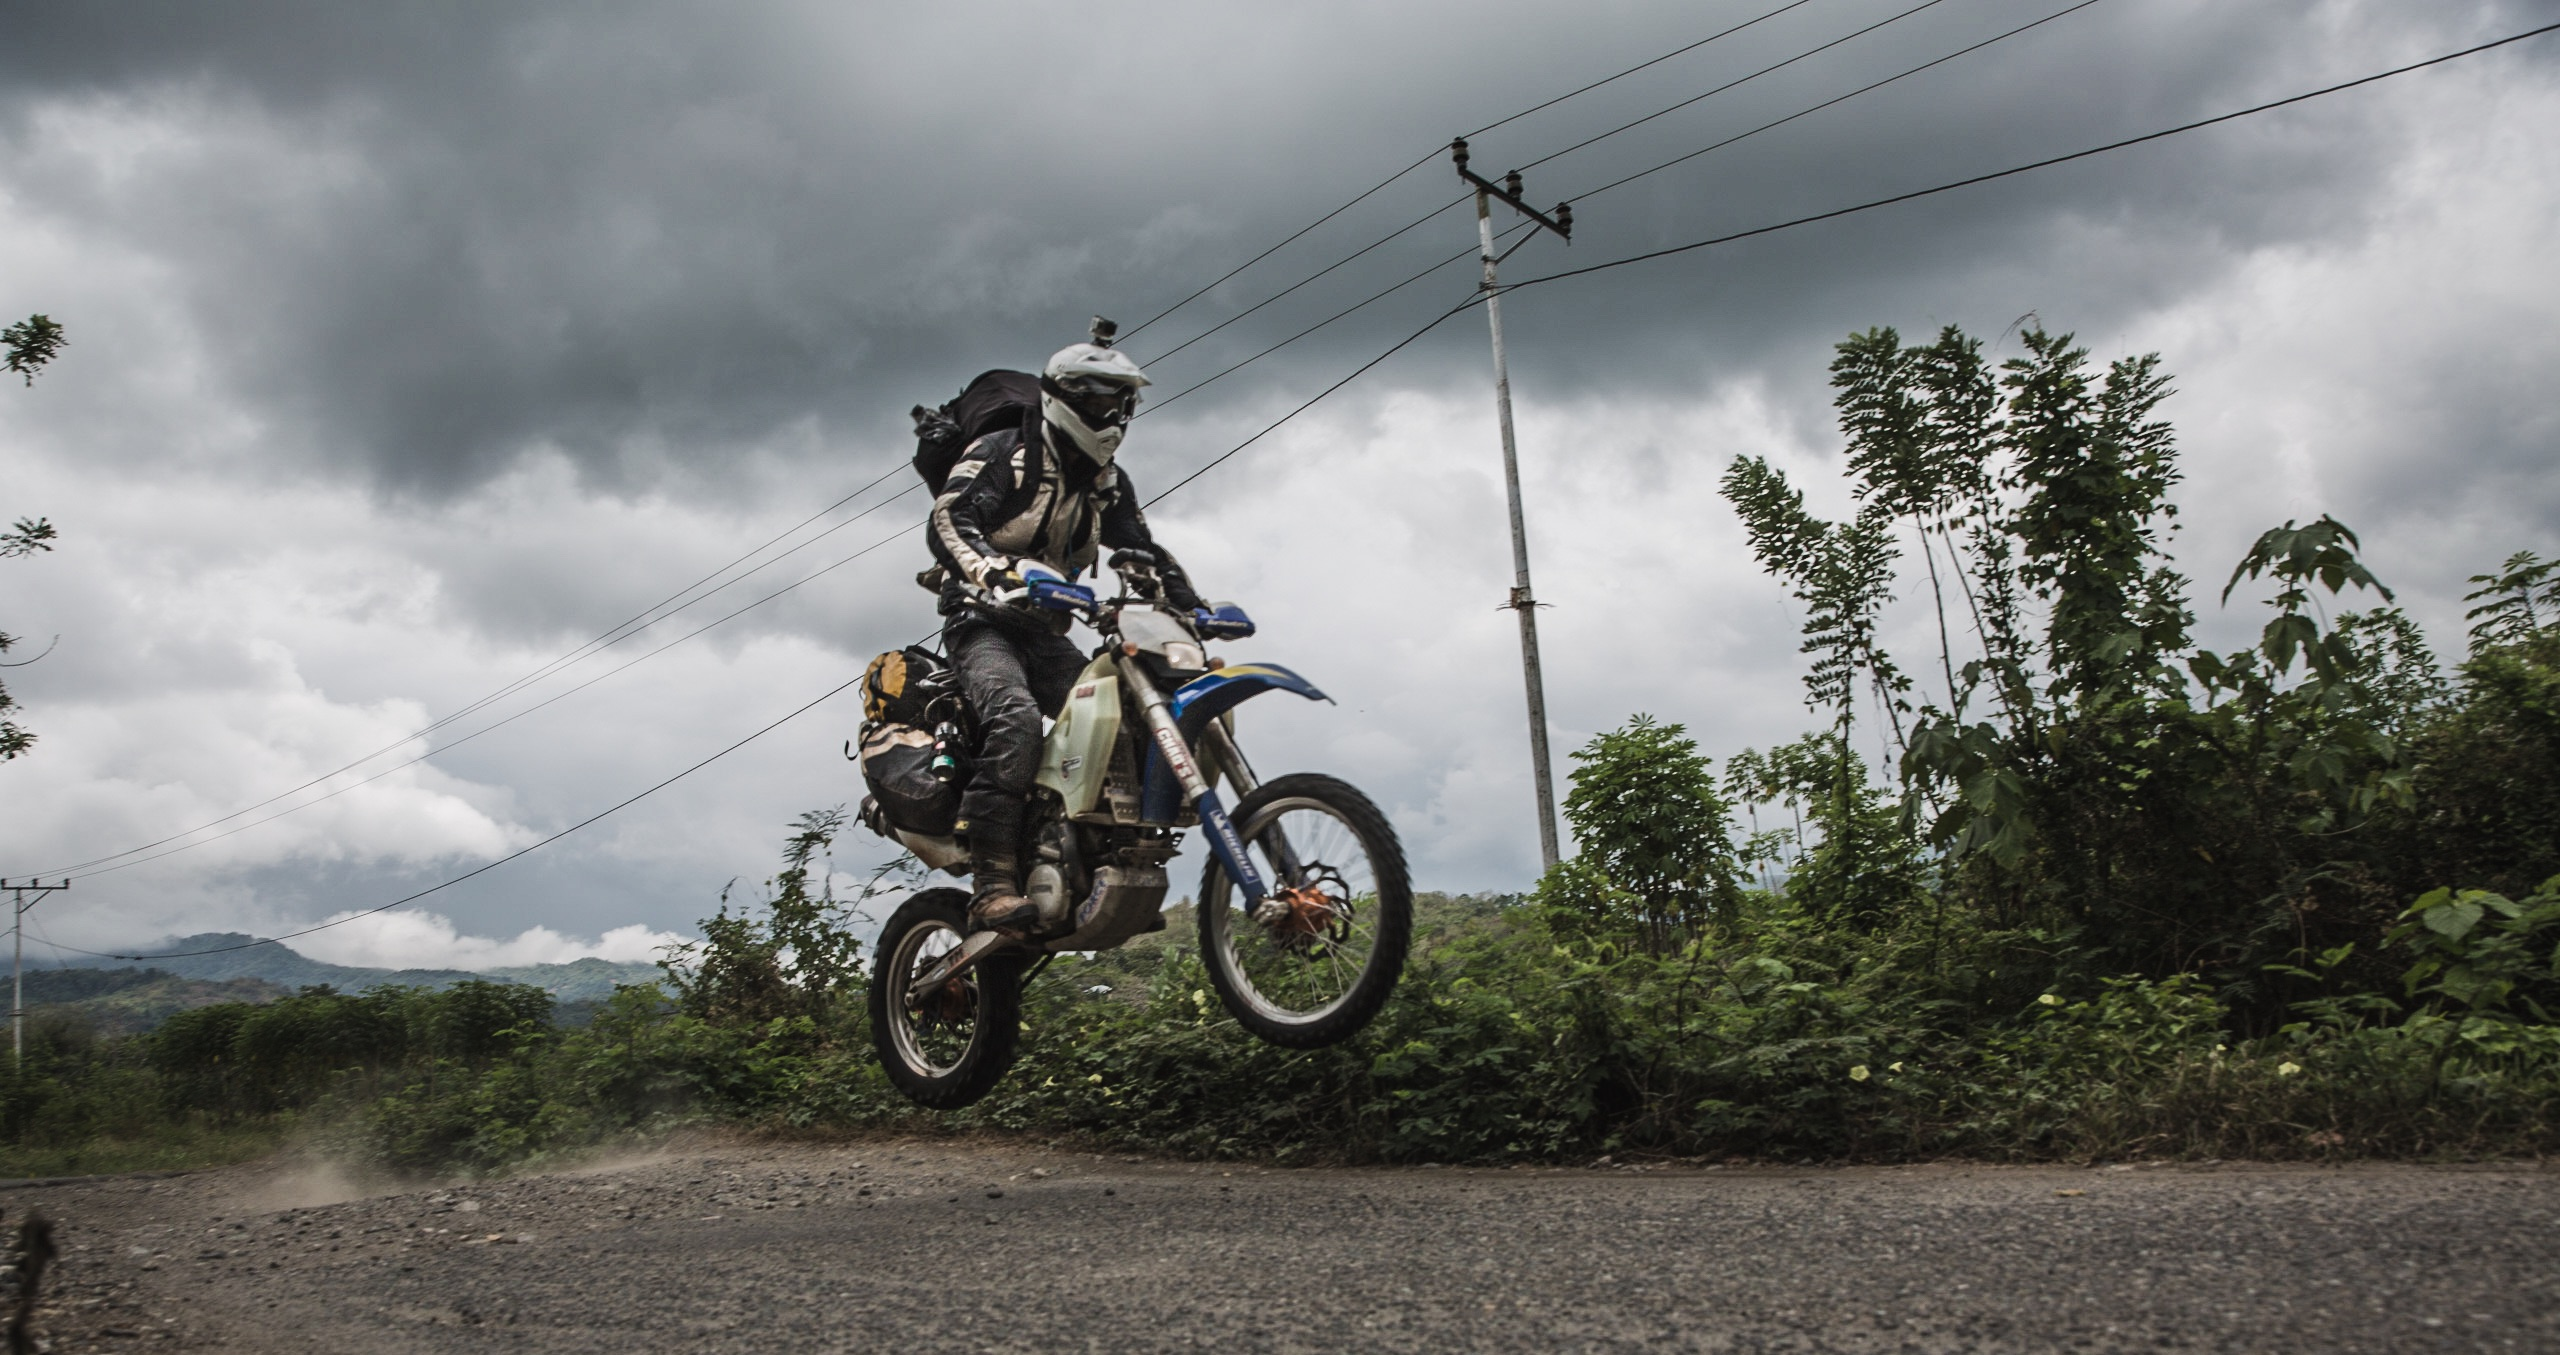 Alex and Josh from A New Man's Track making use of the road in Flores. The plastic sub-frame on the Husaberg FE450 is getting pushed to its limit.